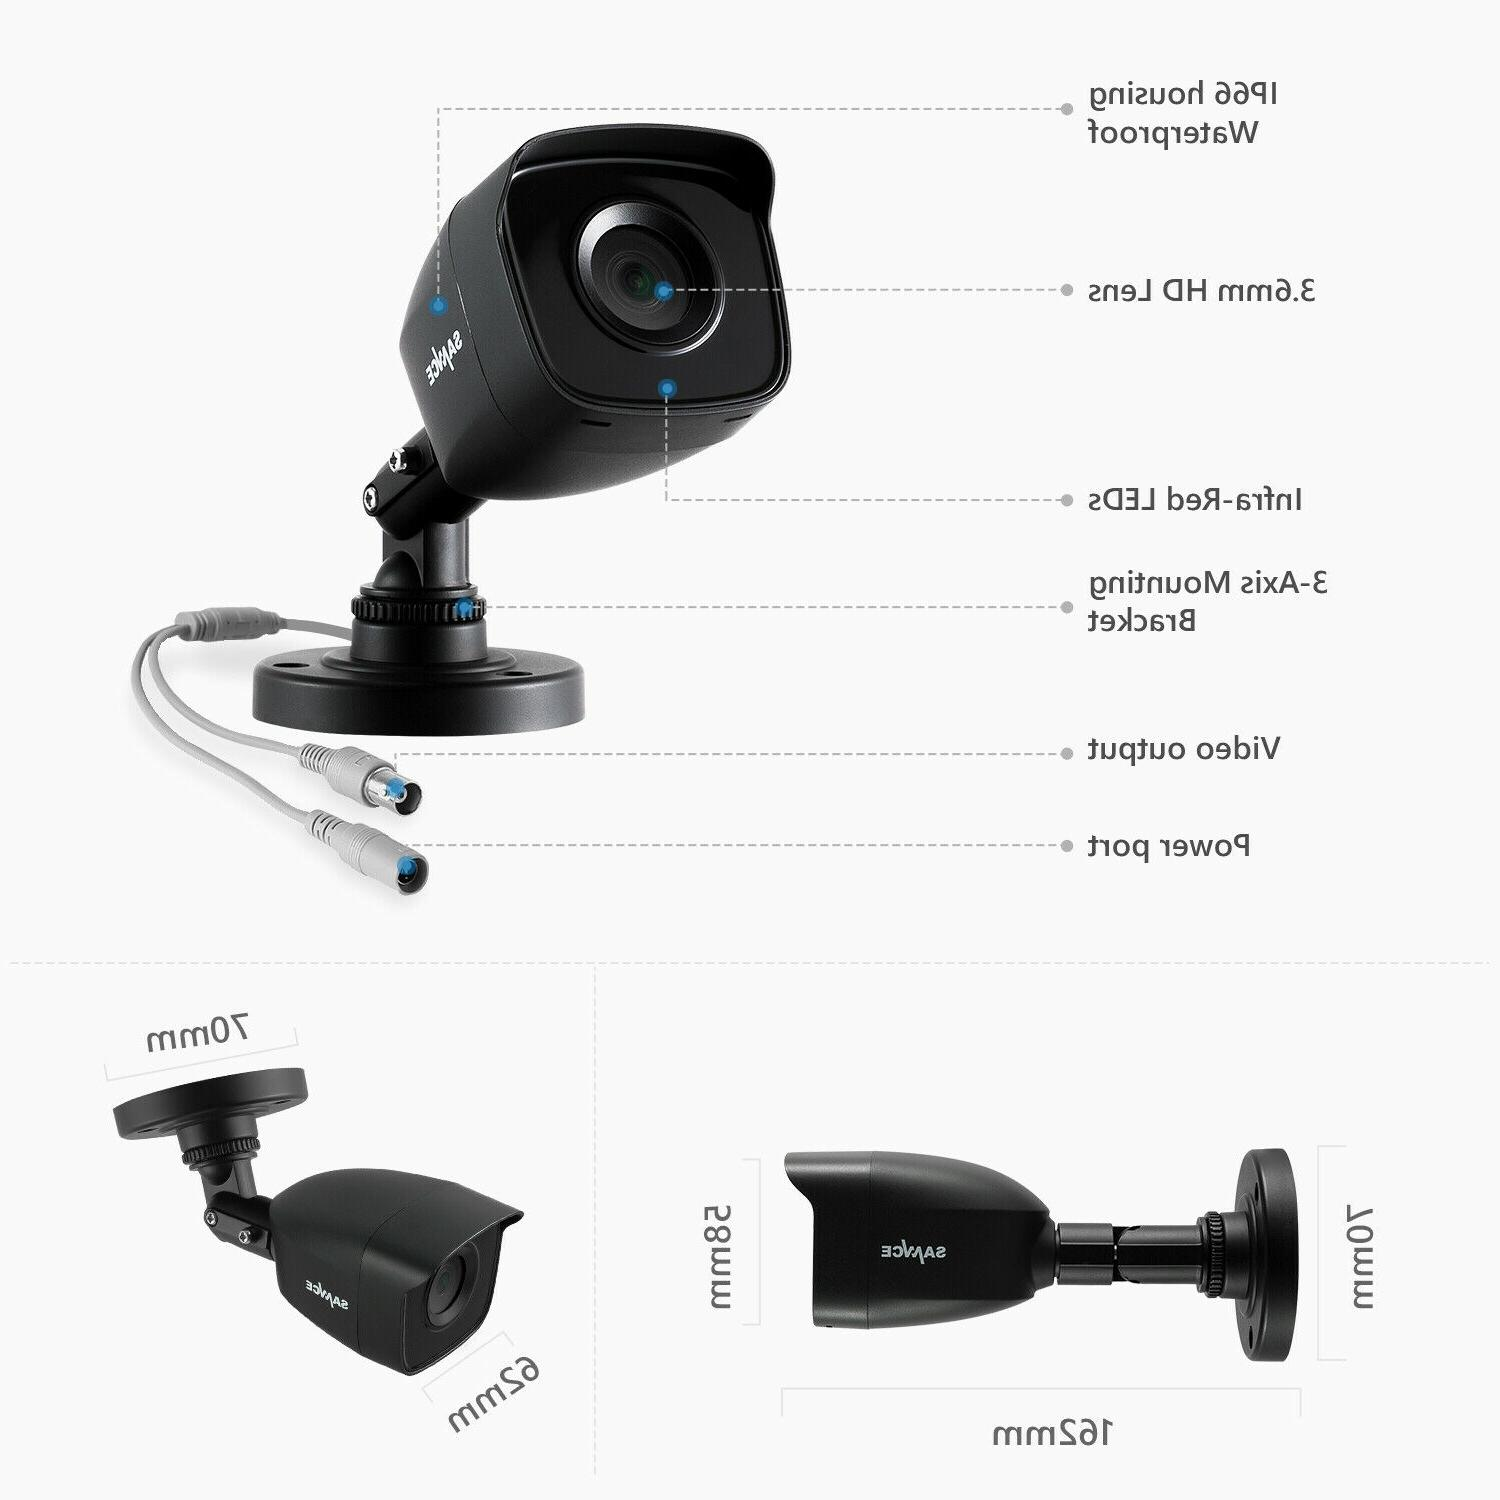 SANNCE 8CH DVR 1080P Security Camera H.264+ Onvif Outdoor Night